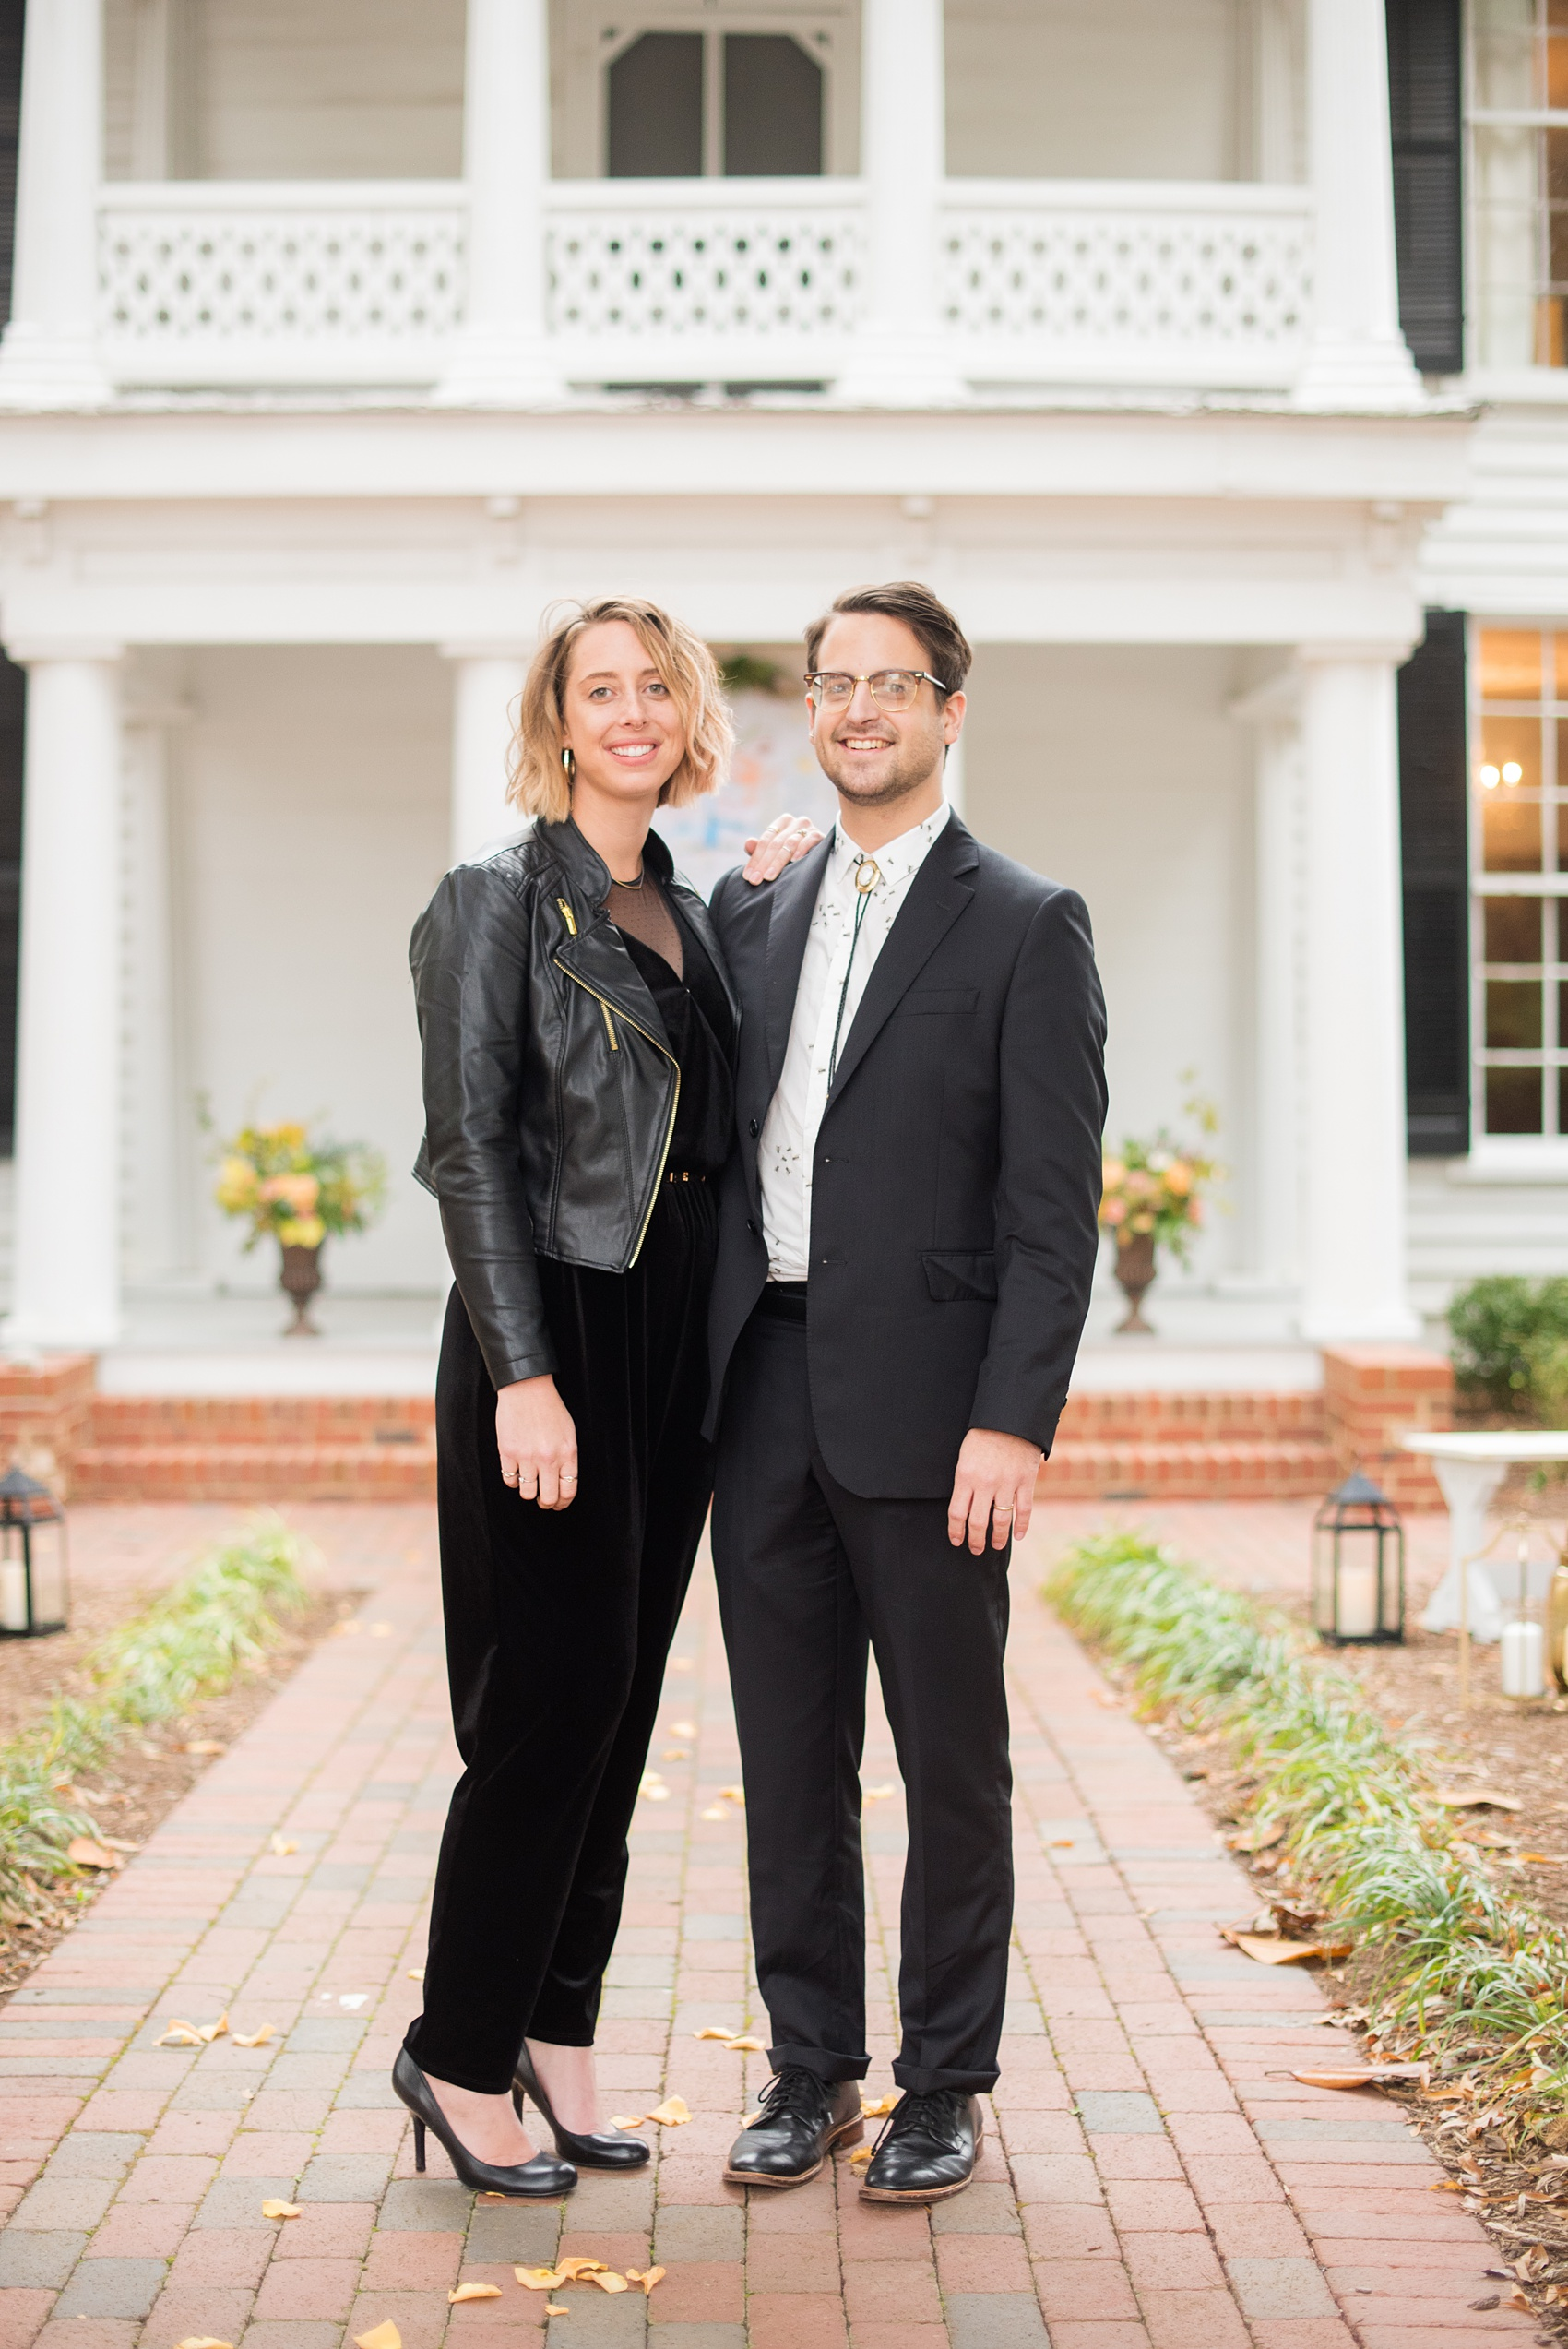 Mikkel Paige Photography photos from a wedding at Leslie-Alford Mims House in North Carolina. Picture of two trendy guests.